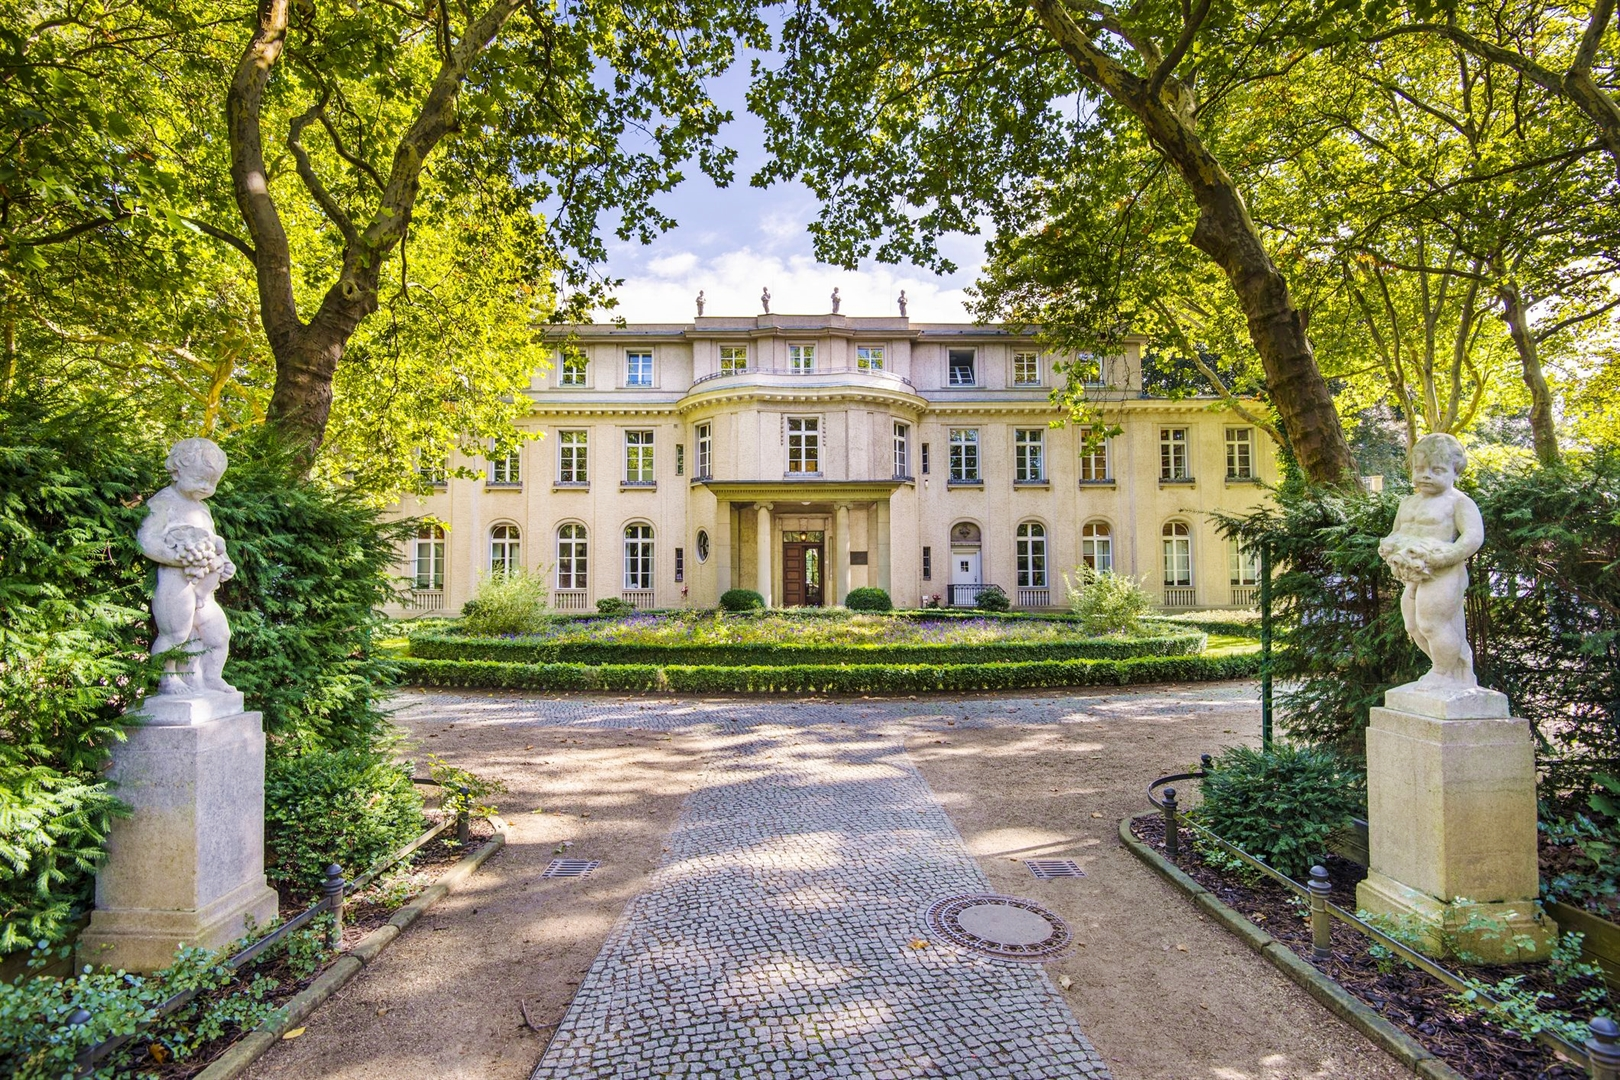 On January 20, 1942, several high-ranking Nazi party and German government officials gathered at this villa in the Berlin suburb of Wannsee to discuss and coordinate the implementation of